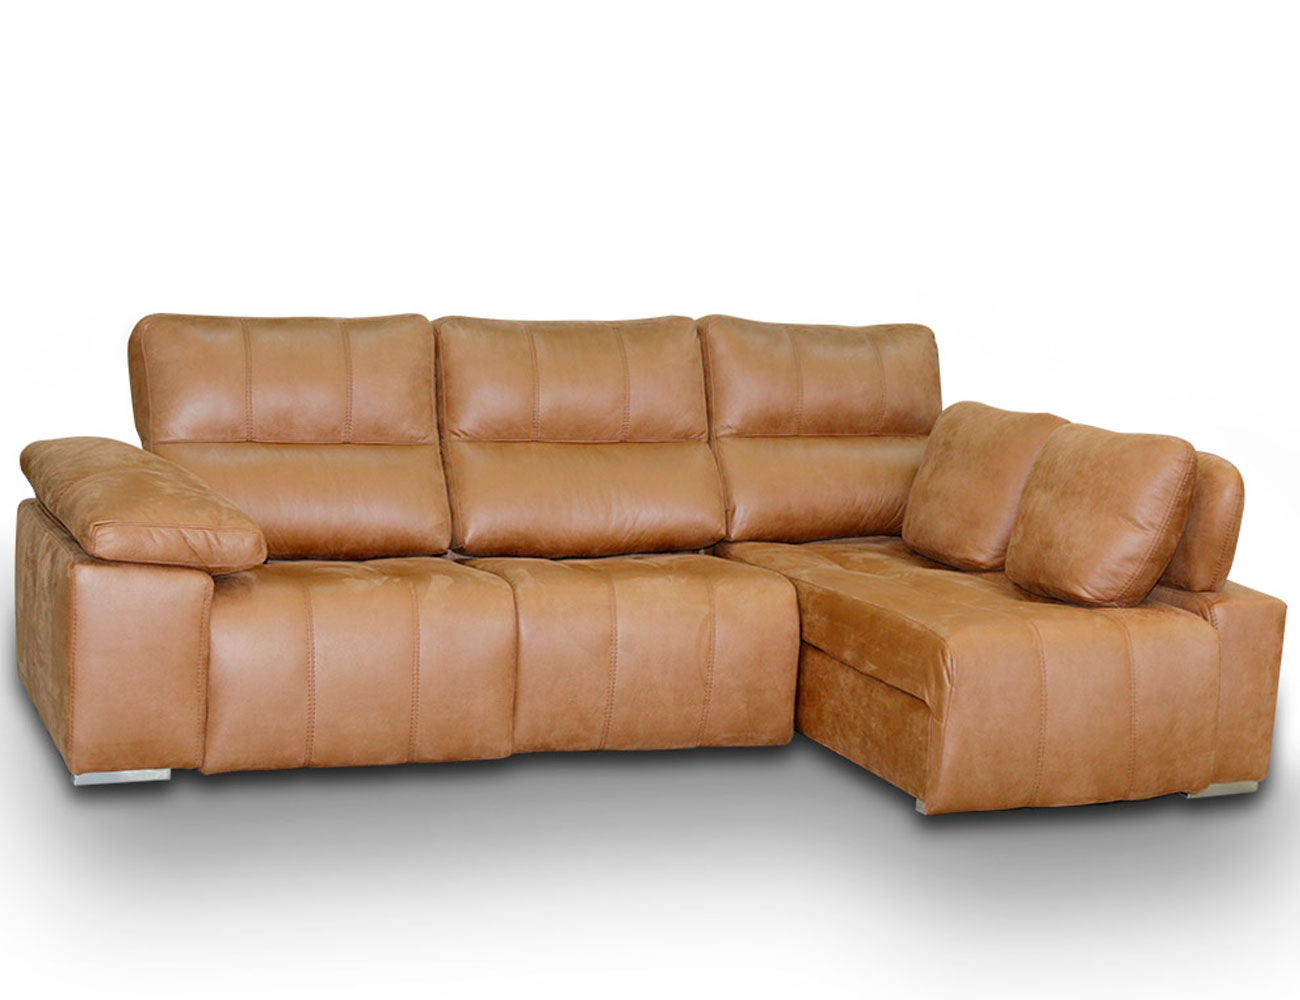 Sofa chaiselongue relax 2 motores anti manchas10